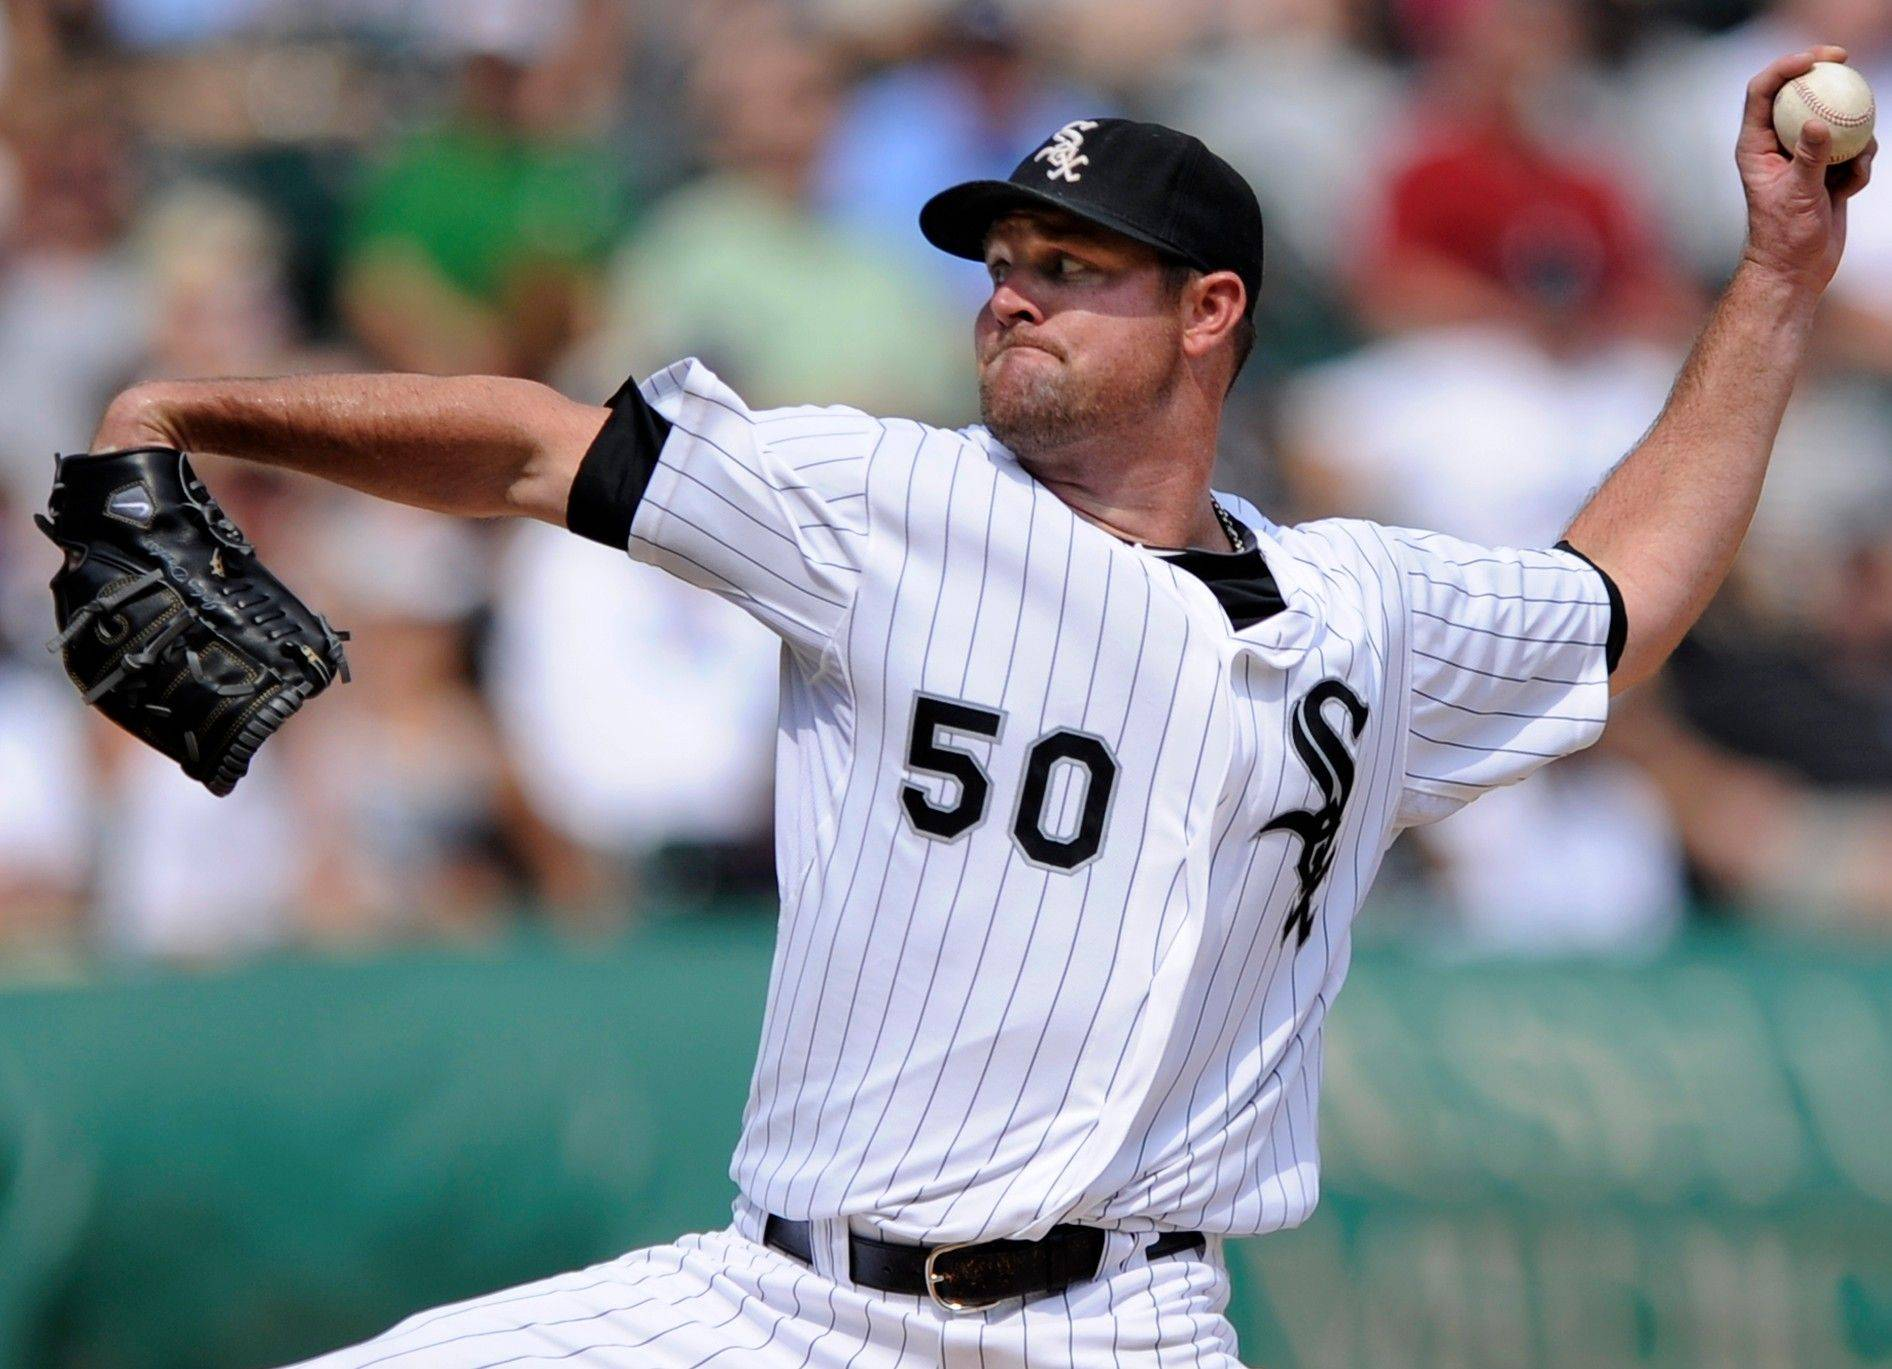 White Sox starter John Danks (4-8) allowed 1 run on 6 hits in 6 innings Wednesday against the Tigers. Danks, who tied a career high with 10 strikeouts, is 4-0 with a 0.98 ERA in his last 6 starts.